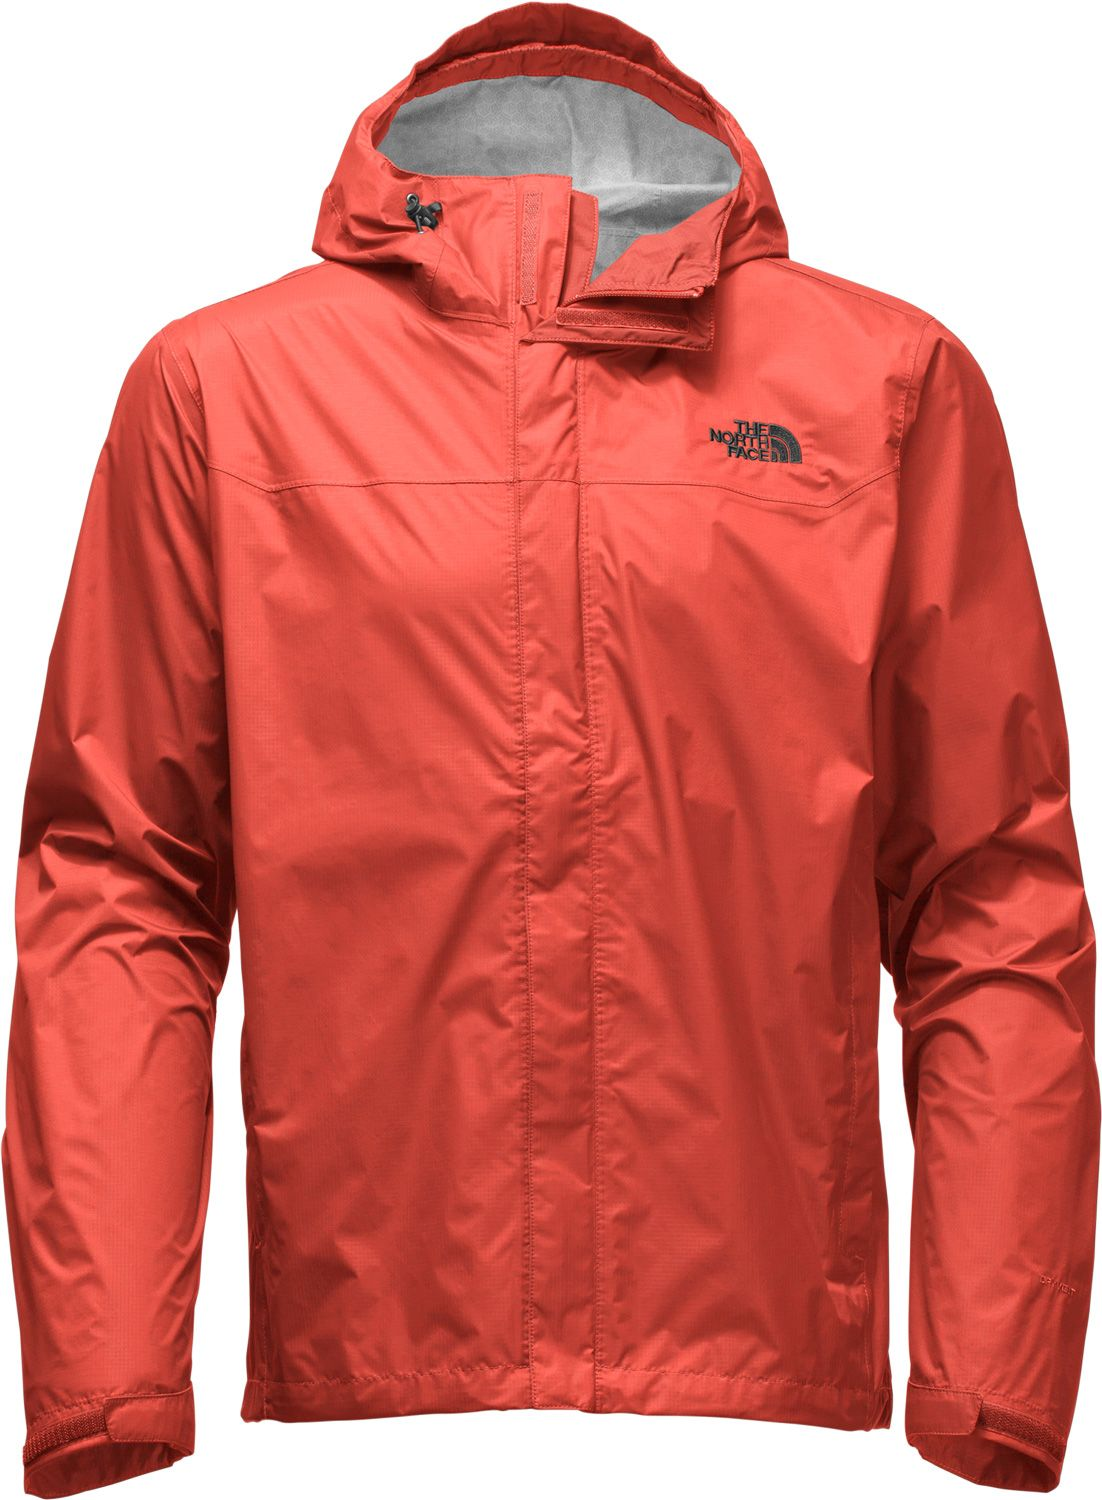 Mens Lined Rain Jacket - Coat Nj